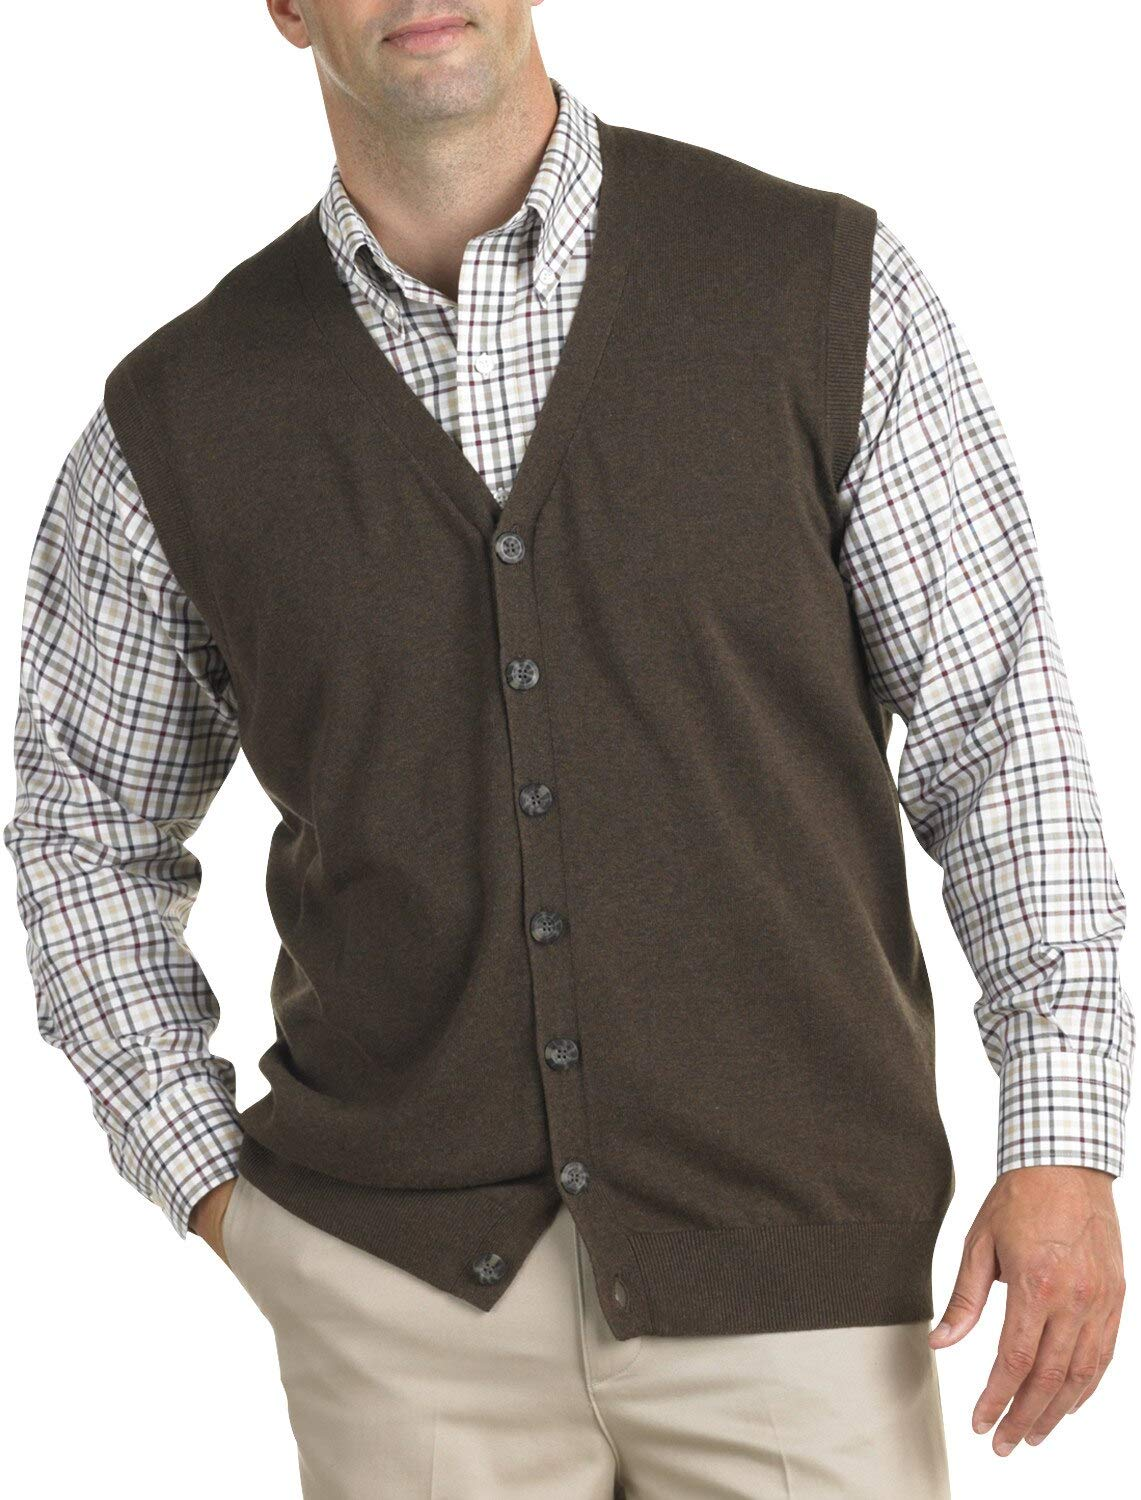 Oak Hill by DXL Big and Tall Button-Front Sweater Vest, Java Heather, 4XLT by Oak Hill